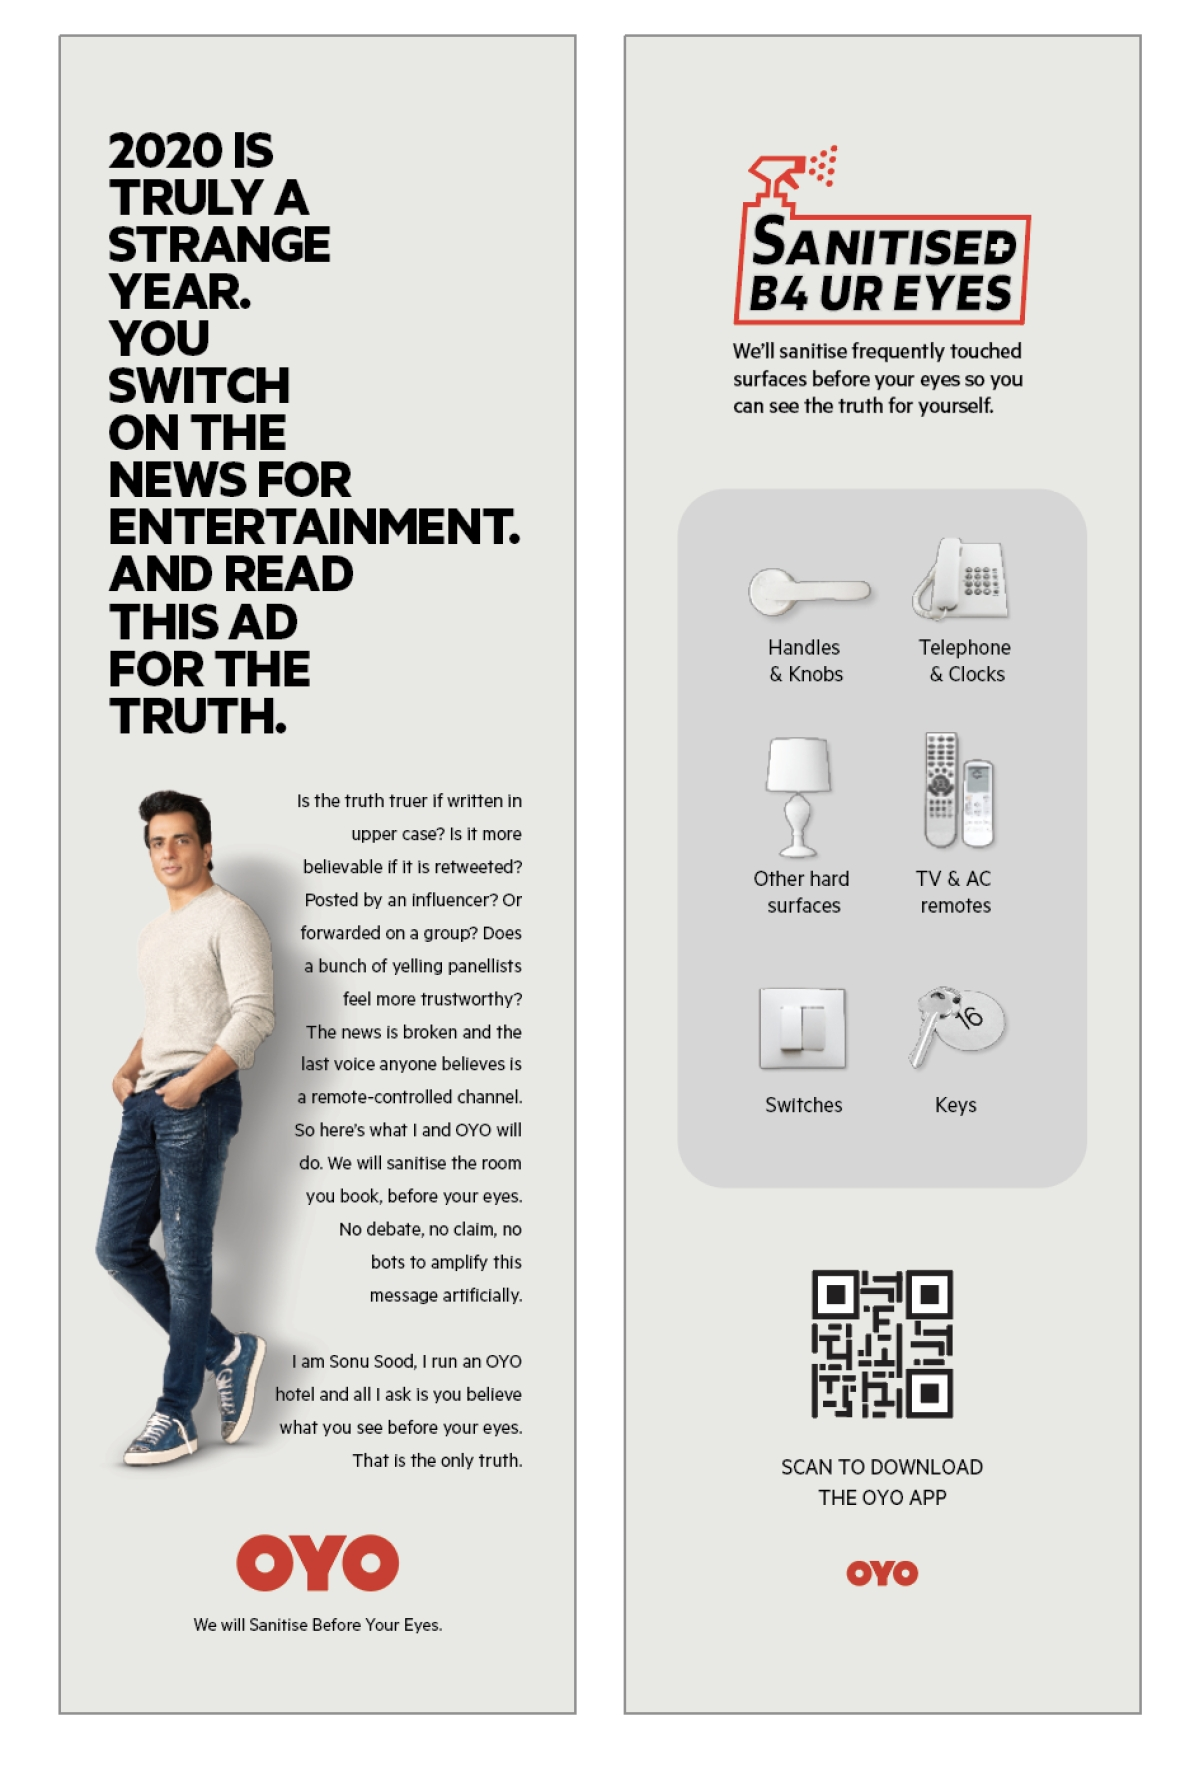 OYO Hotels & Homes ropes in Sonu Sood as the face of its 'Sanitised Before Your Eyes' campaign